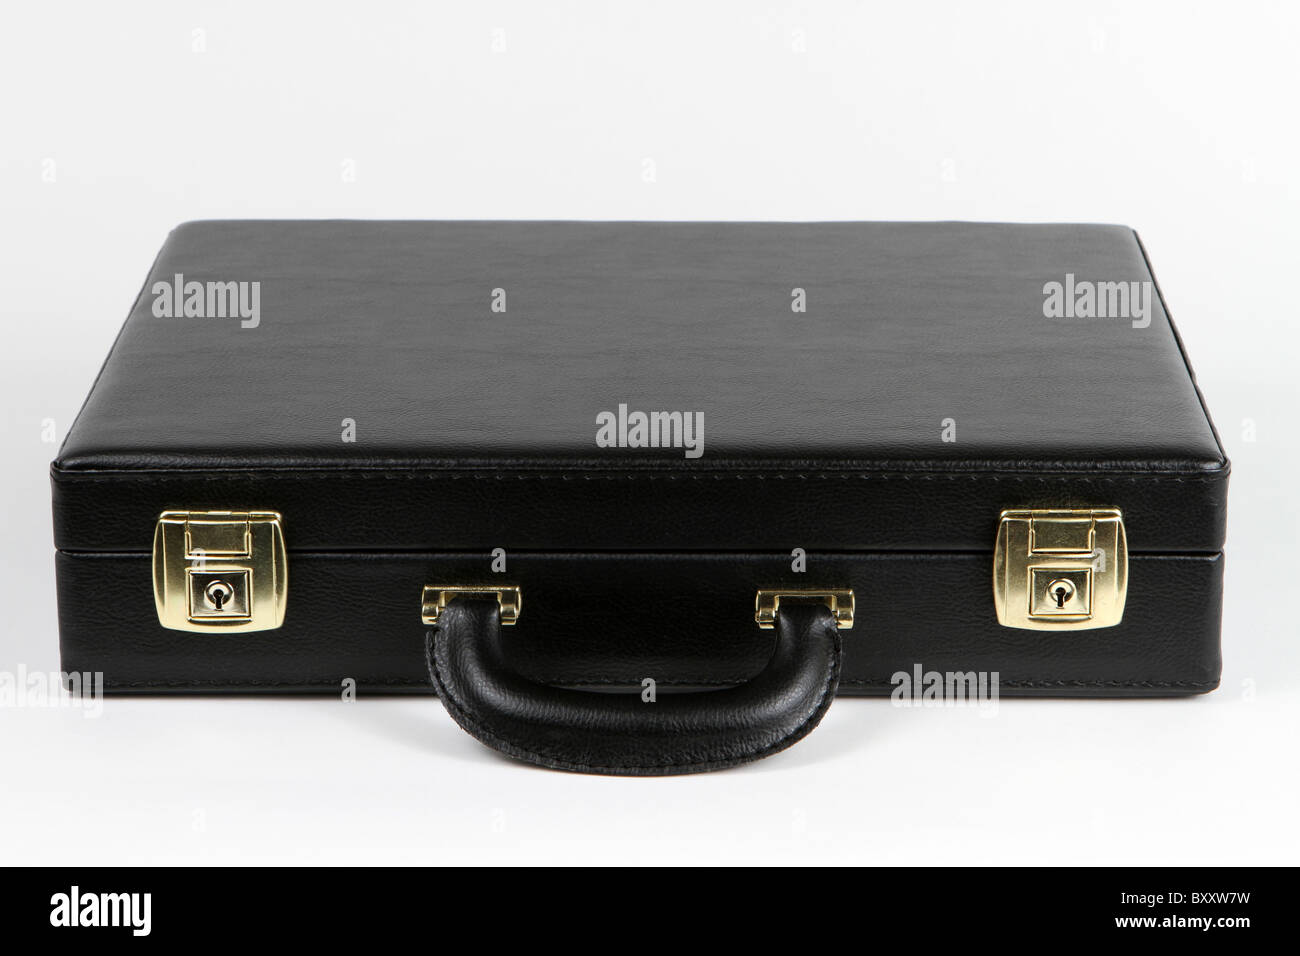 Black business briefcase with brass clasps and a handle. - Stock Image